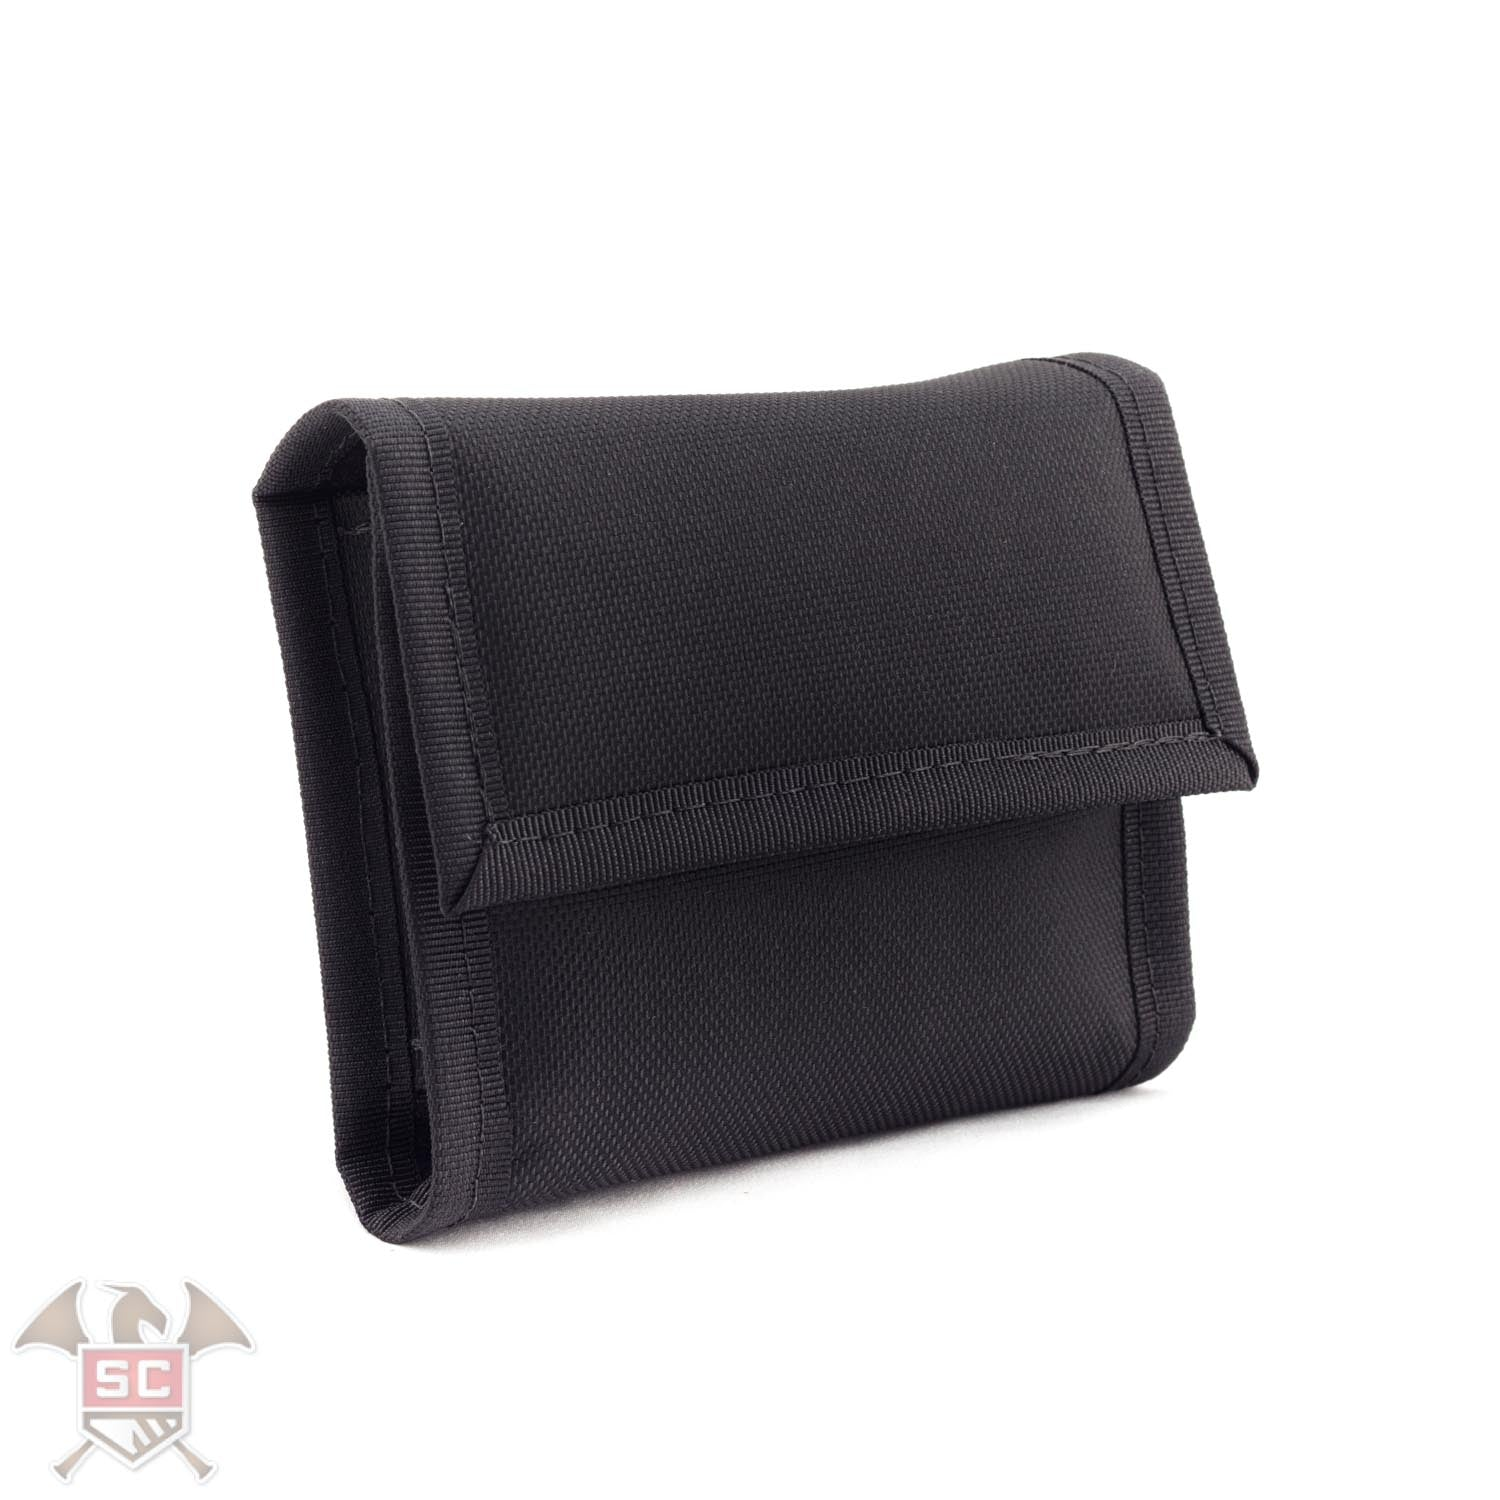 MB Mouthpiece Pouch for up to 5